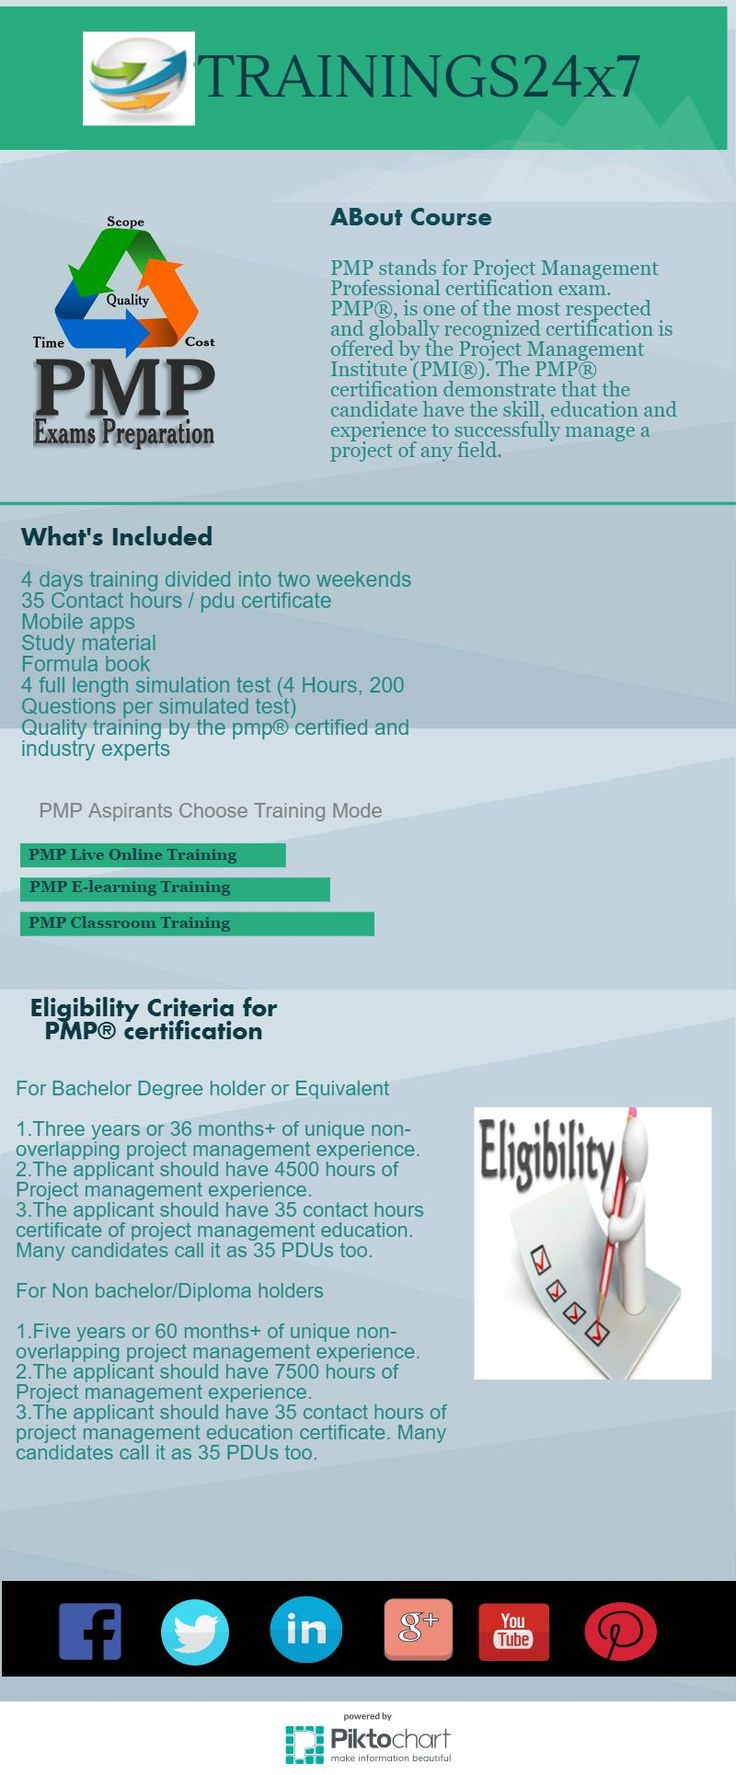 25 best infographics pmp six sigma digital markrteing images pmp certification training httptrainings24x7pmp certification training xflitez Image collections